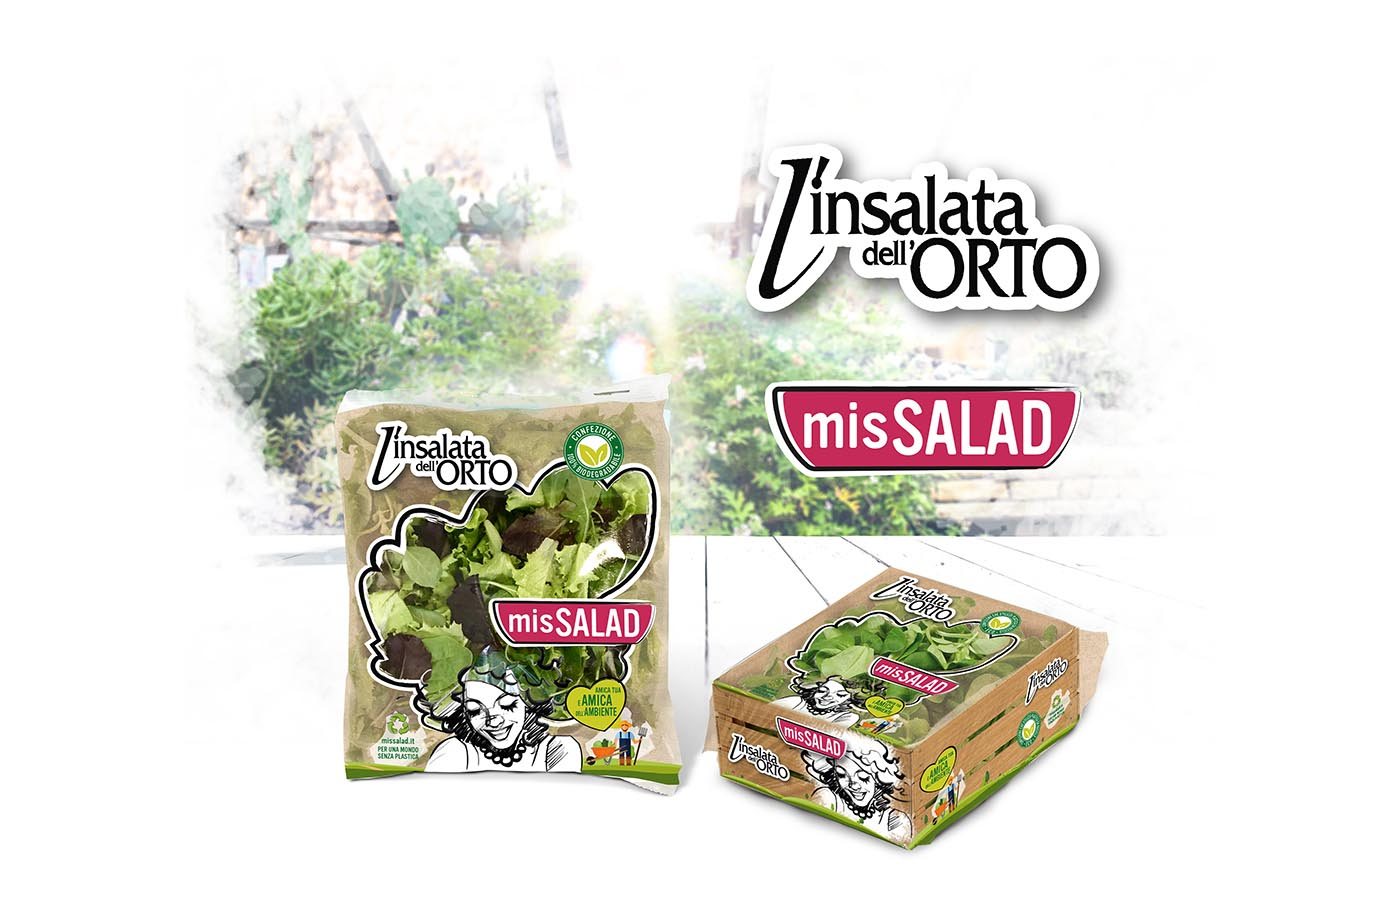 MISSALAD L'insalata dell'orto